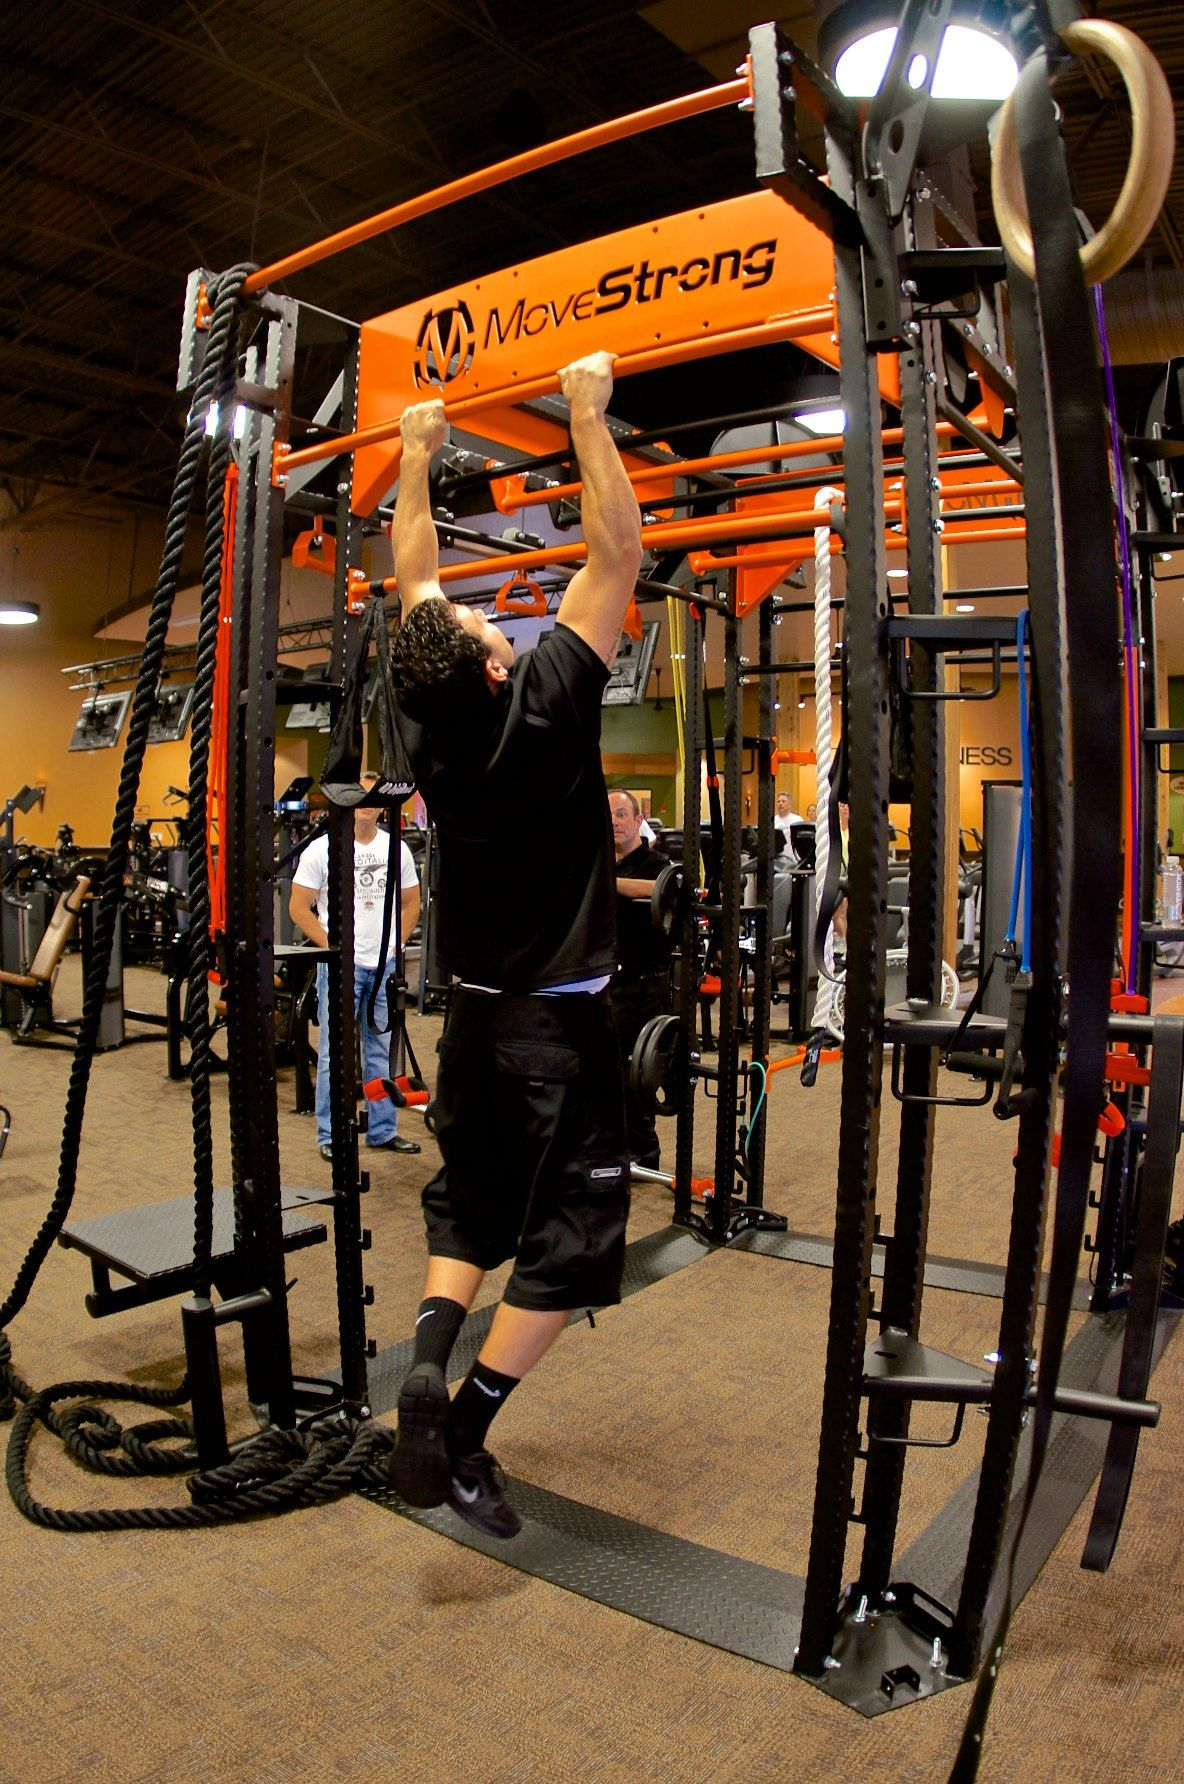 Pull-up bars-MoveStrong-FTS